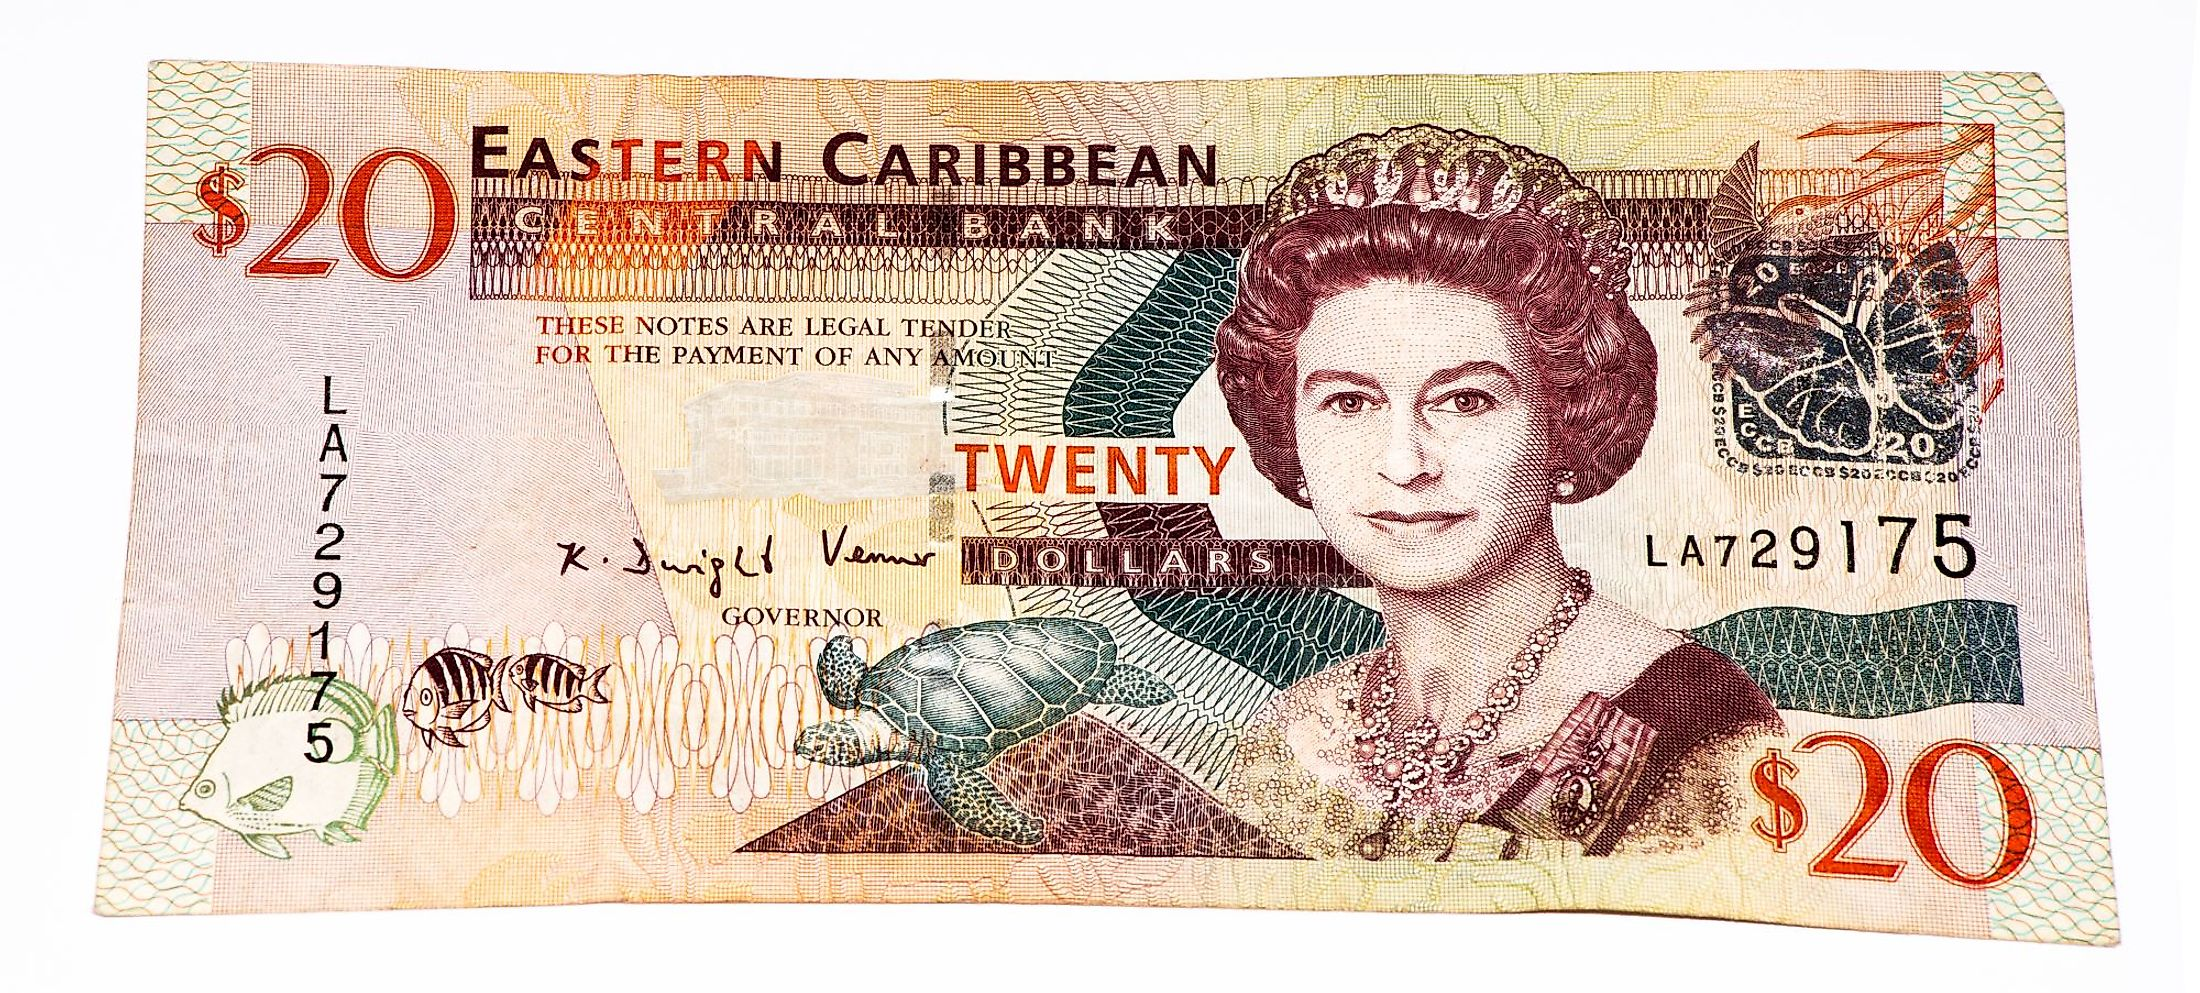 East Caribbean dollar coins and banknote.